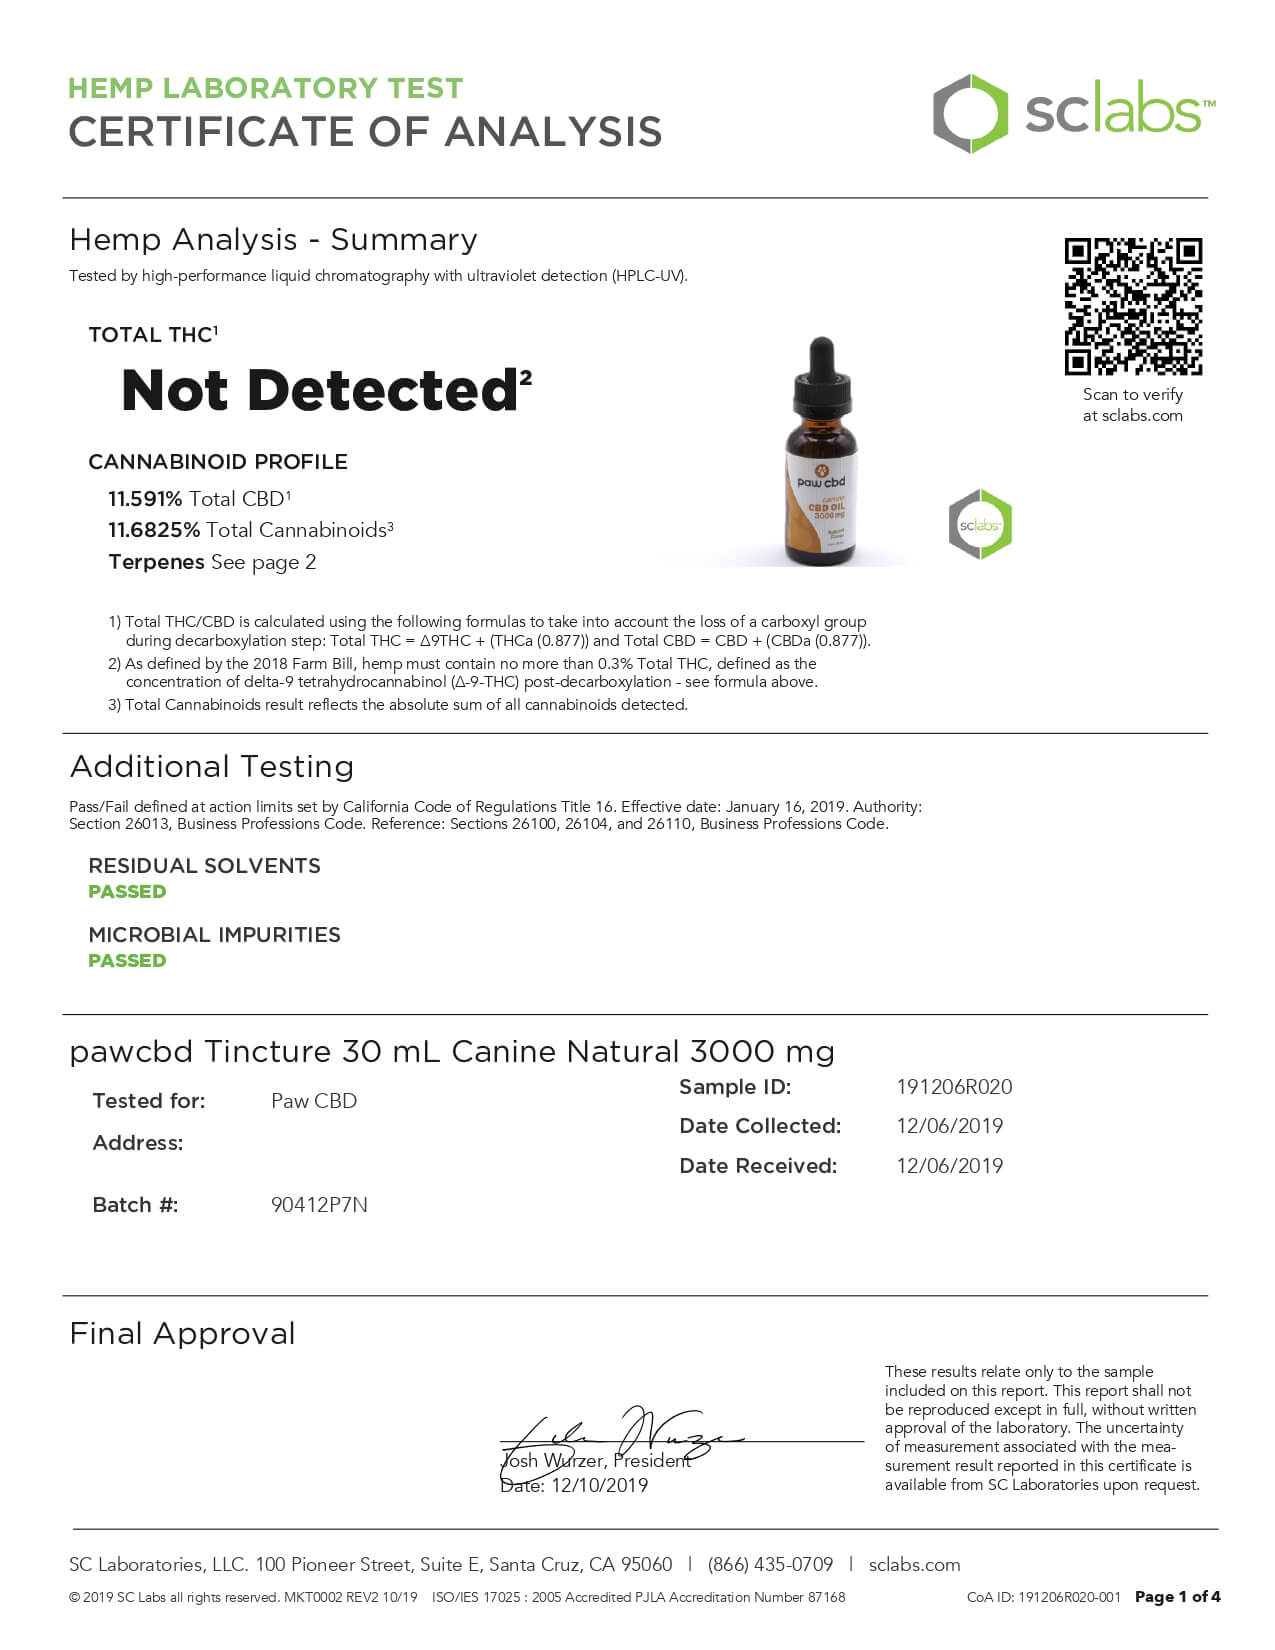 cbdMD CBD Pet Tincture Natural Flavored for Canines 3000mg Lab Report